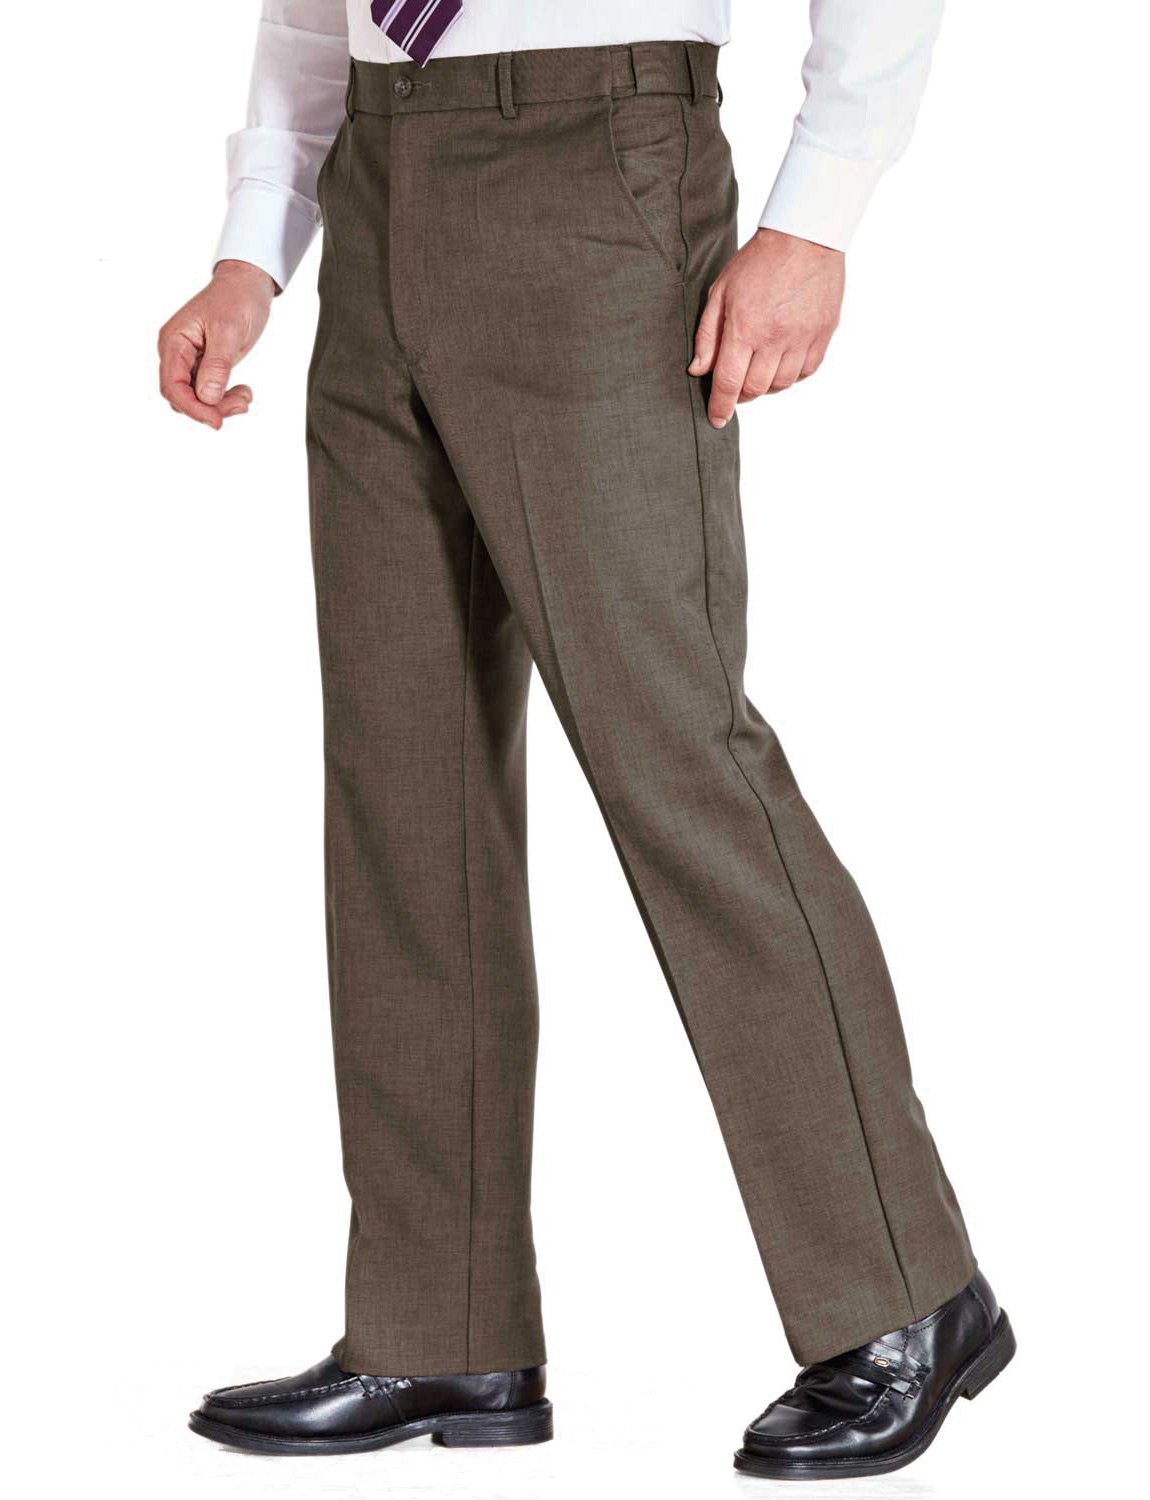 Mens-Farah-Flex-Trouser-Pants-With-Self-Adjusting-Waistband thumbnail 6